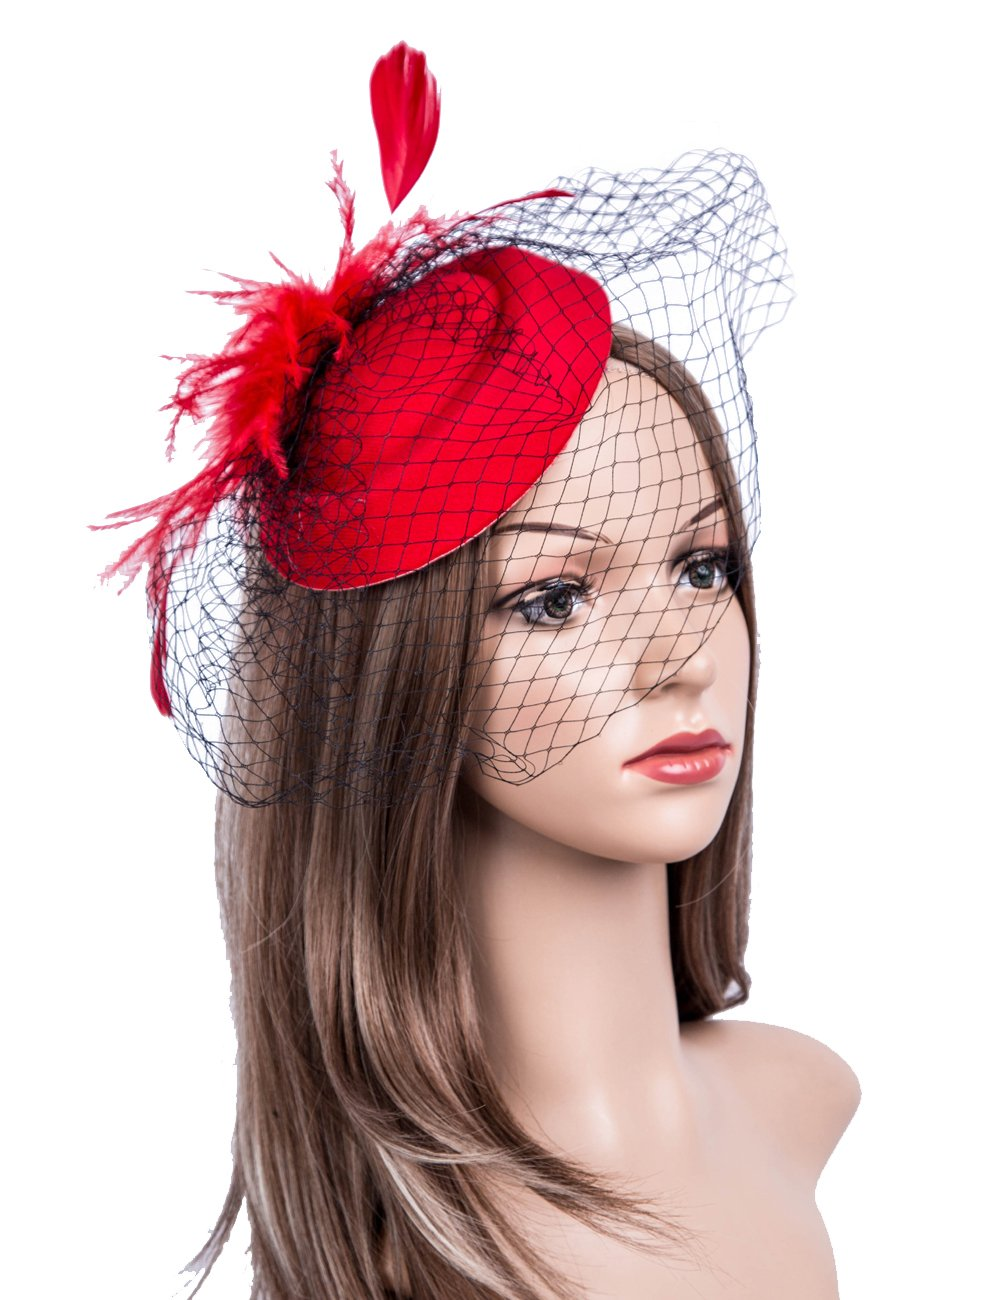 Cizoe Fascinators Hats 20s 50s Hat Pillbox Hat Cocktail Tea Party Headwear with Veil for Girls and Women(B-Red)